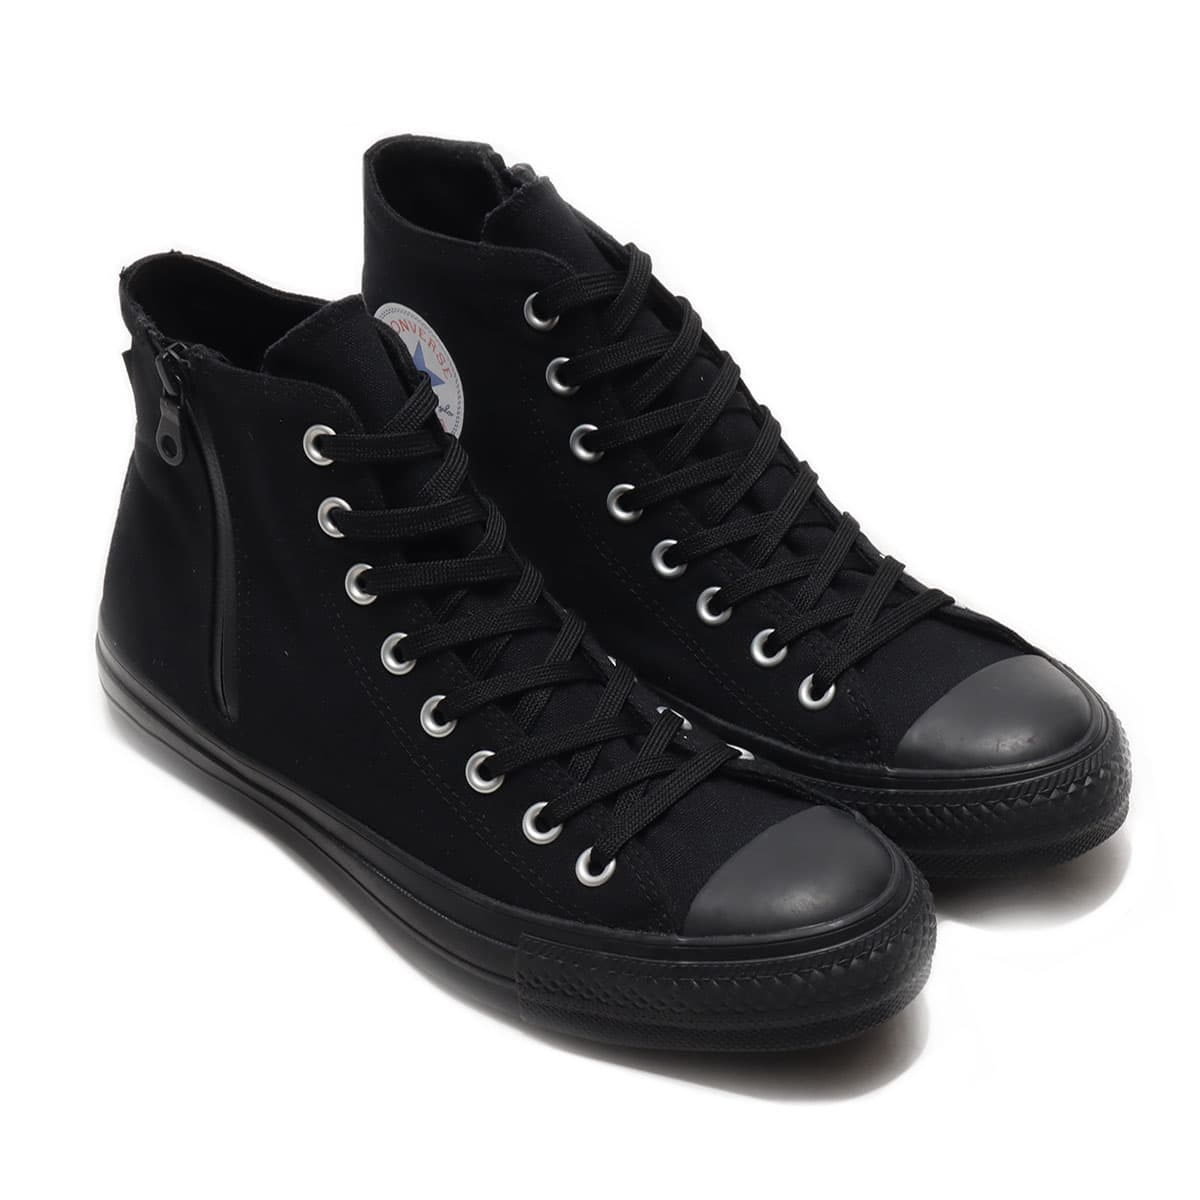 CONVERSE ALL STAR 100 GORE-TEX Z HI ブラックモノクローム 20FW-I_photo_large